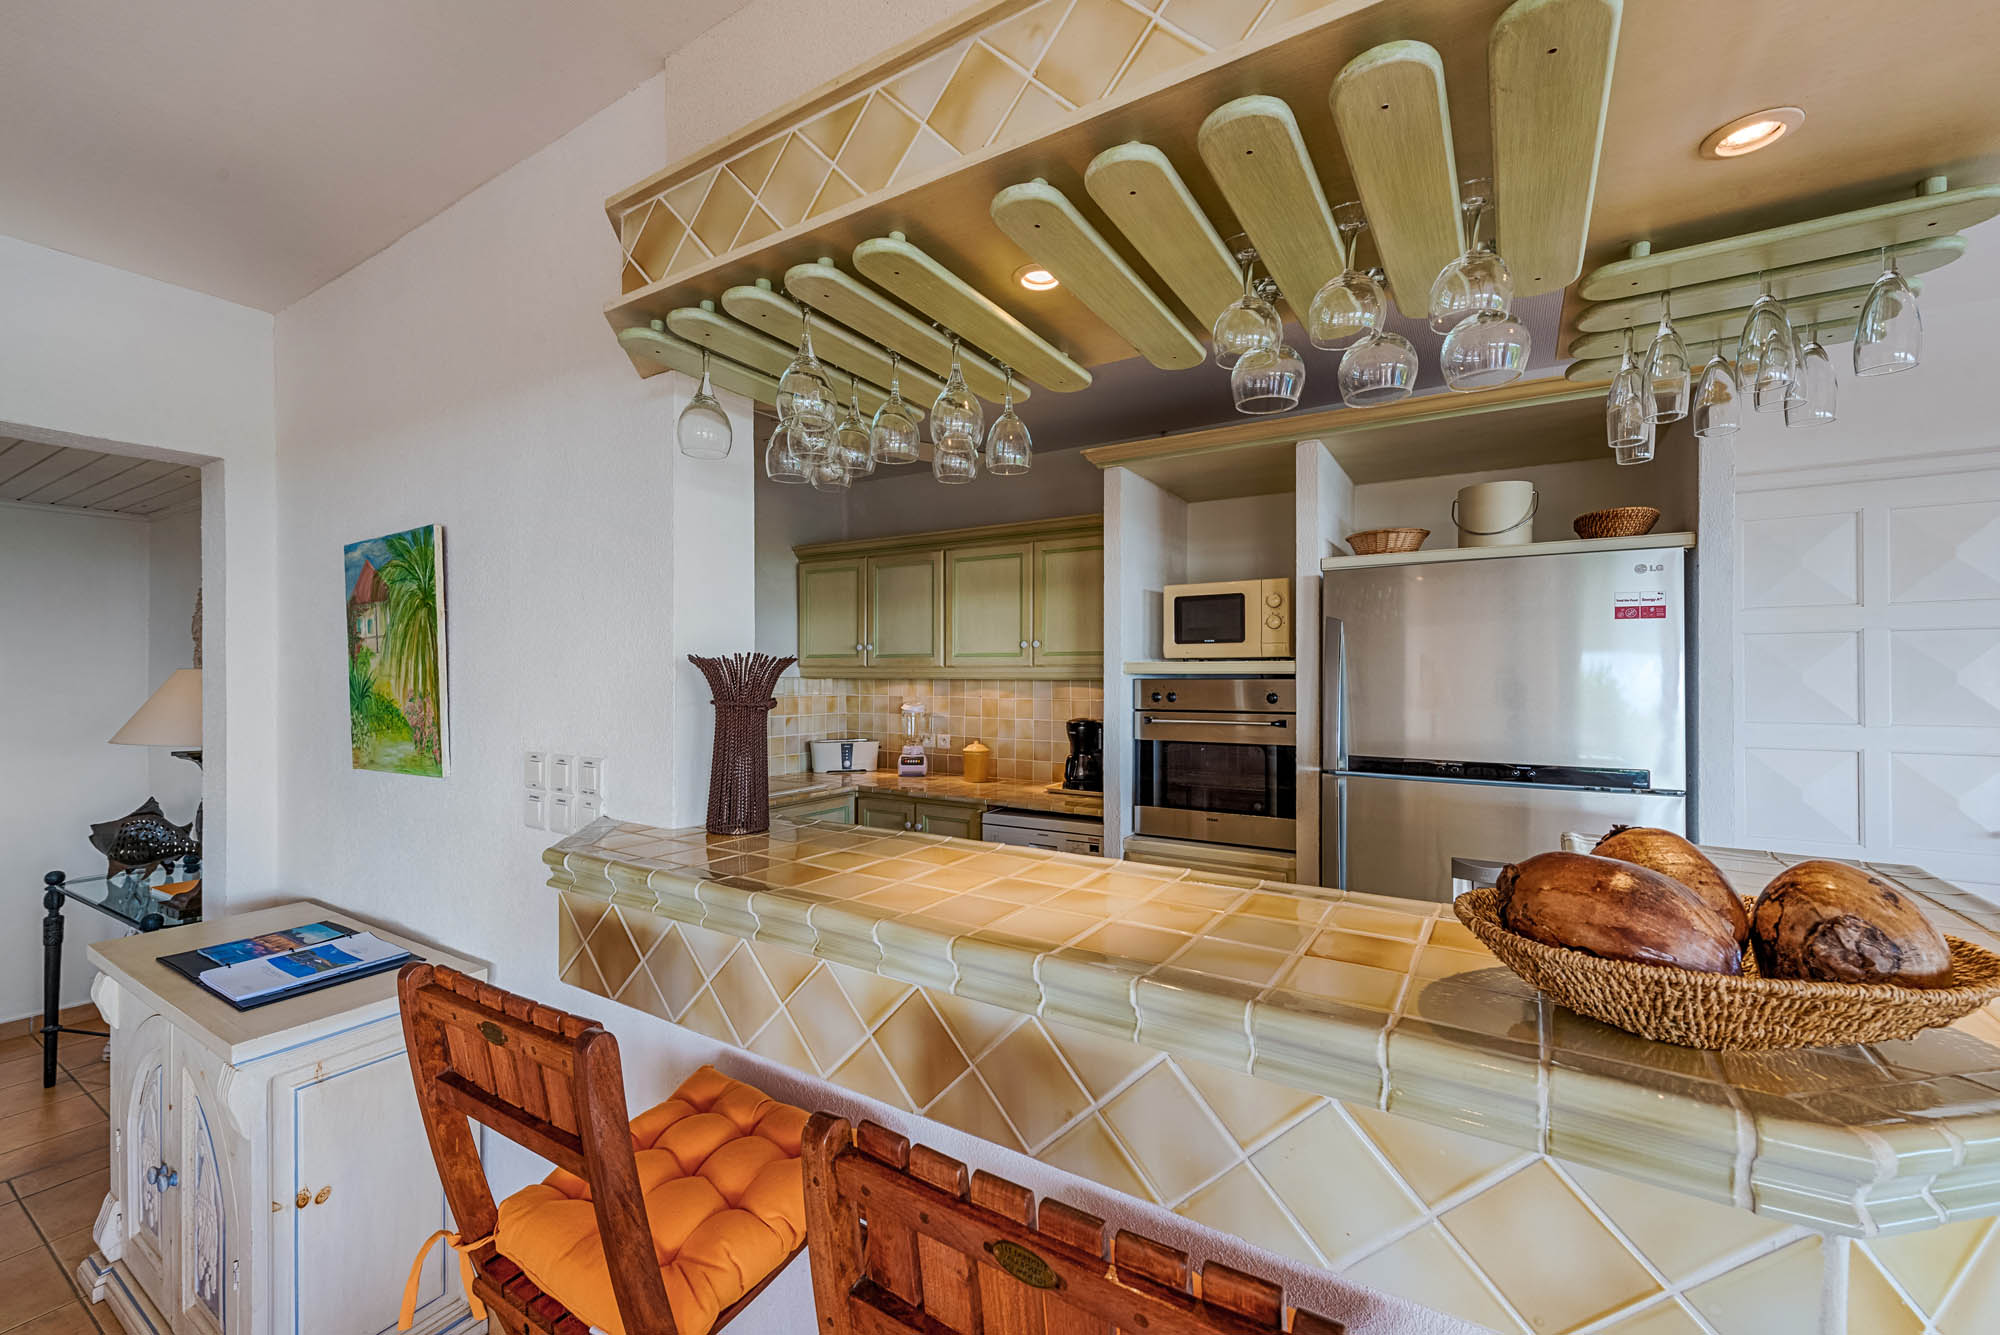 Little Provence is featuring a kitchen with every you might need while you are on vacation at  St. Martin, French West Indies.